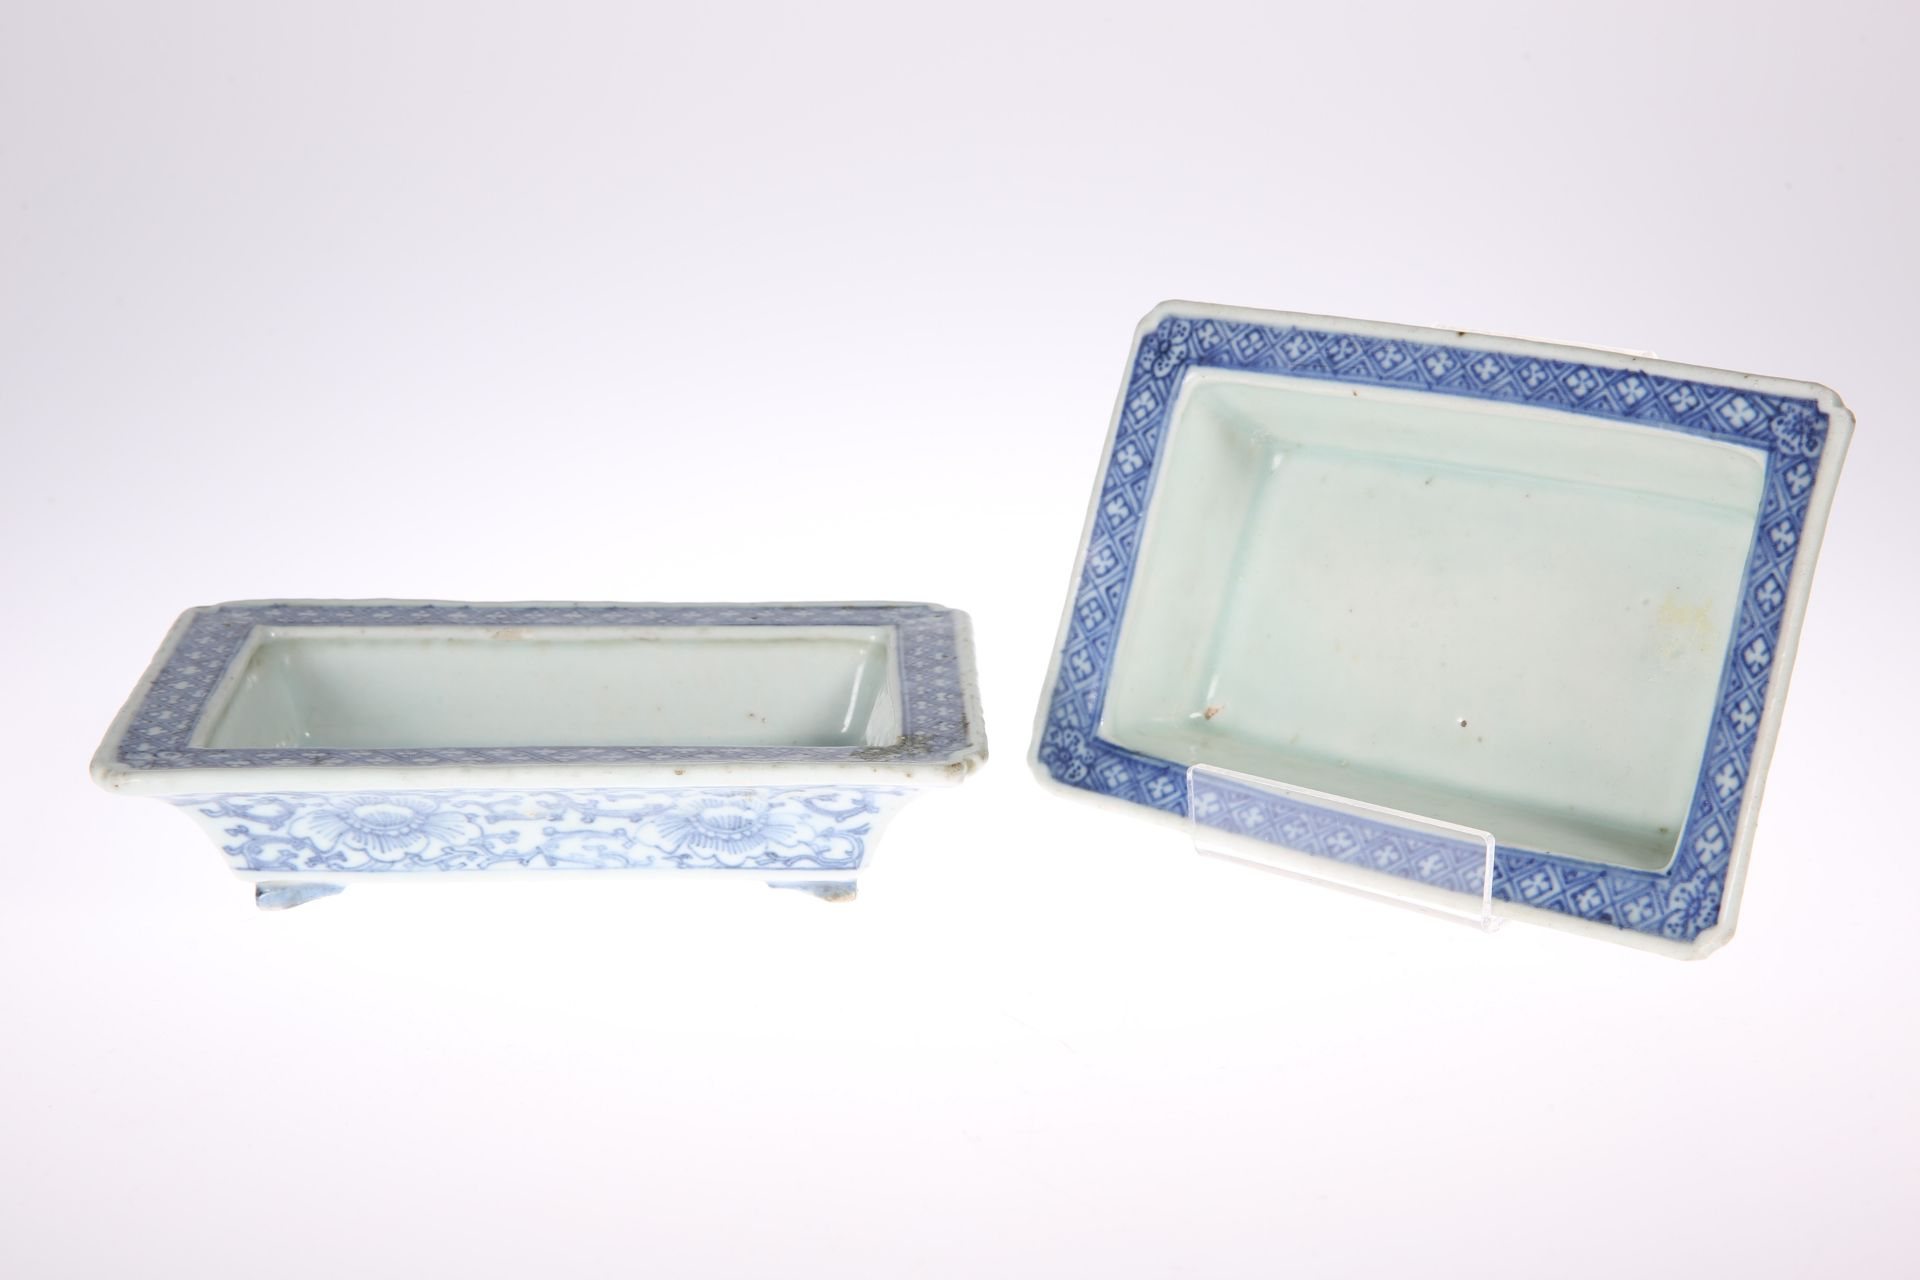 A NEAR PAIR OF CHINESE BLUE AND WHITE PLANTERS, rectangular with bracket feet, the exteriors painted